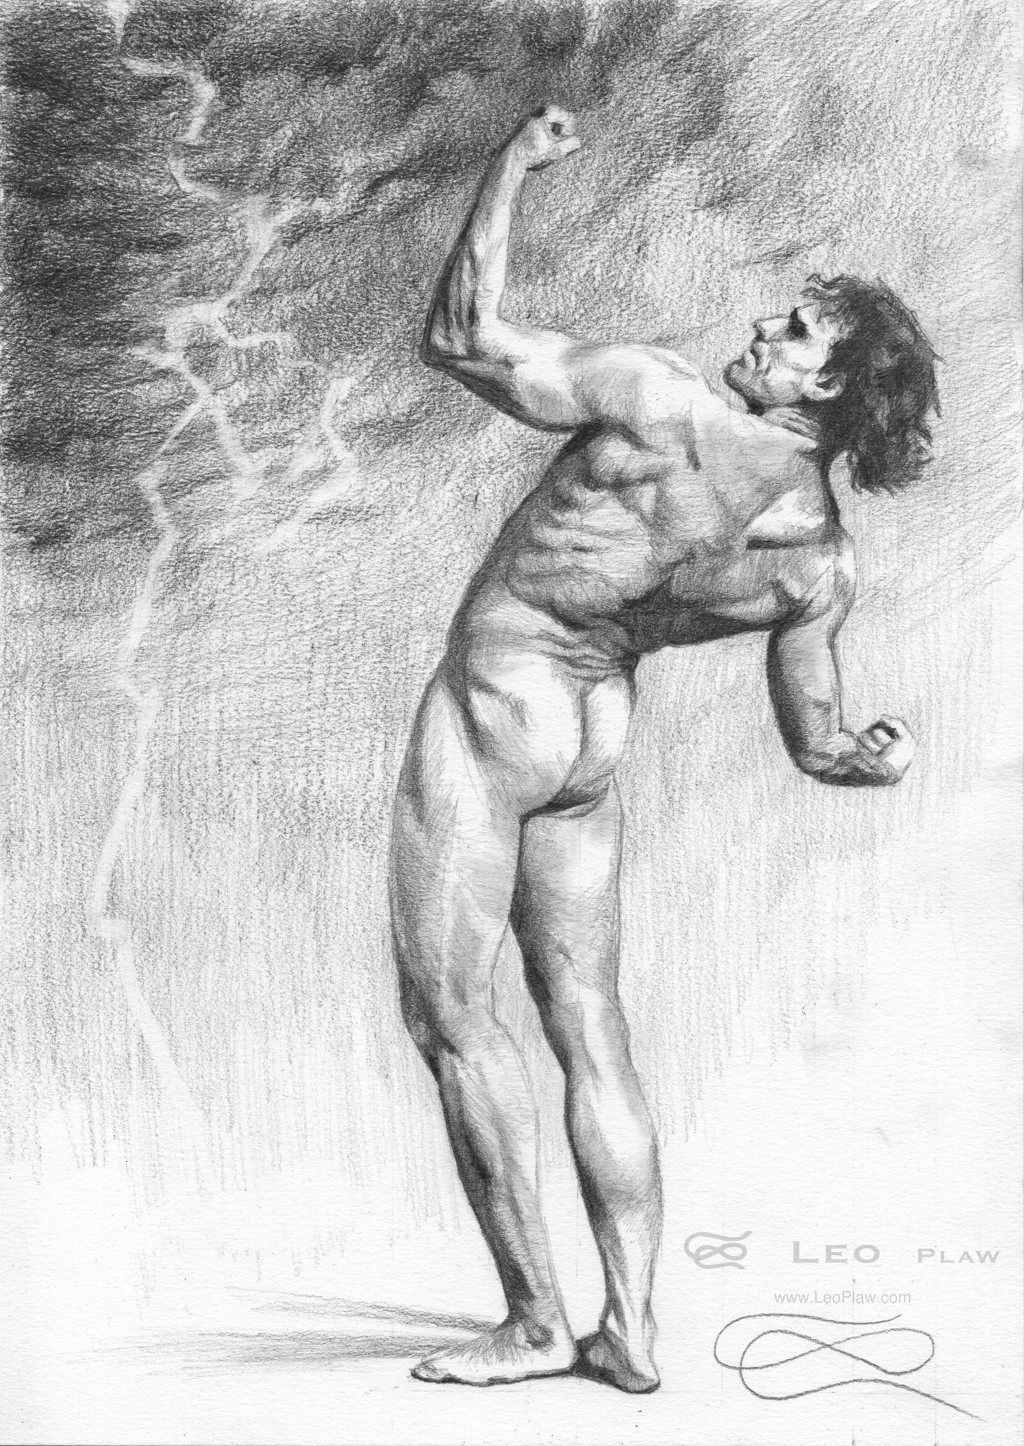 """""""Figure 40 - Drawing"""", Leo Plaw, 21 x 30cm, graphite pencil on paper 300gsm"""